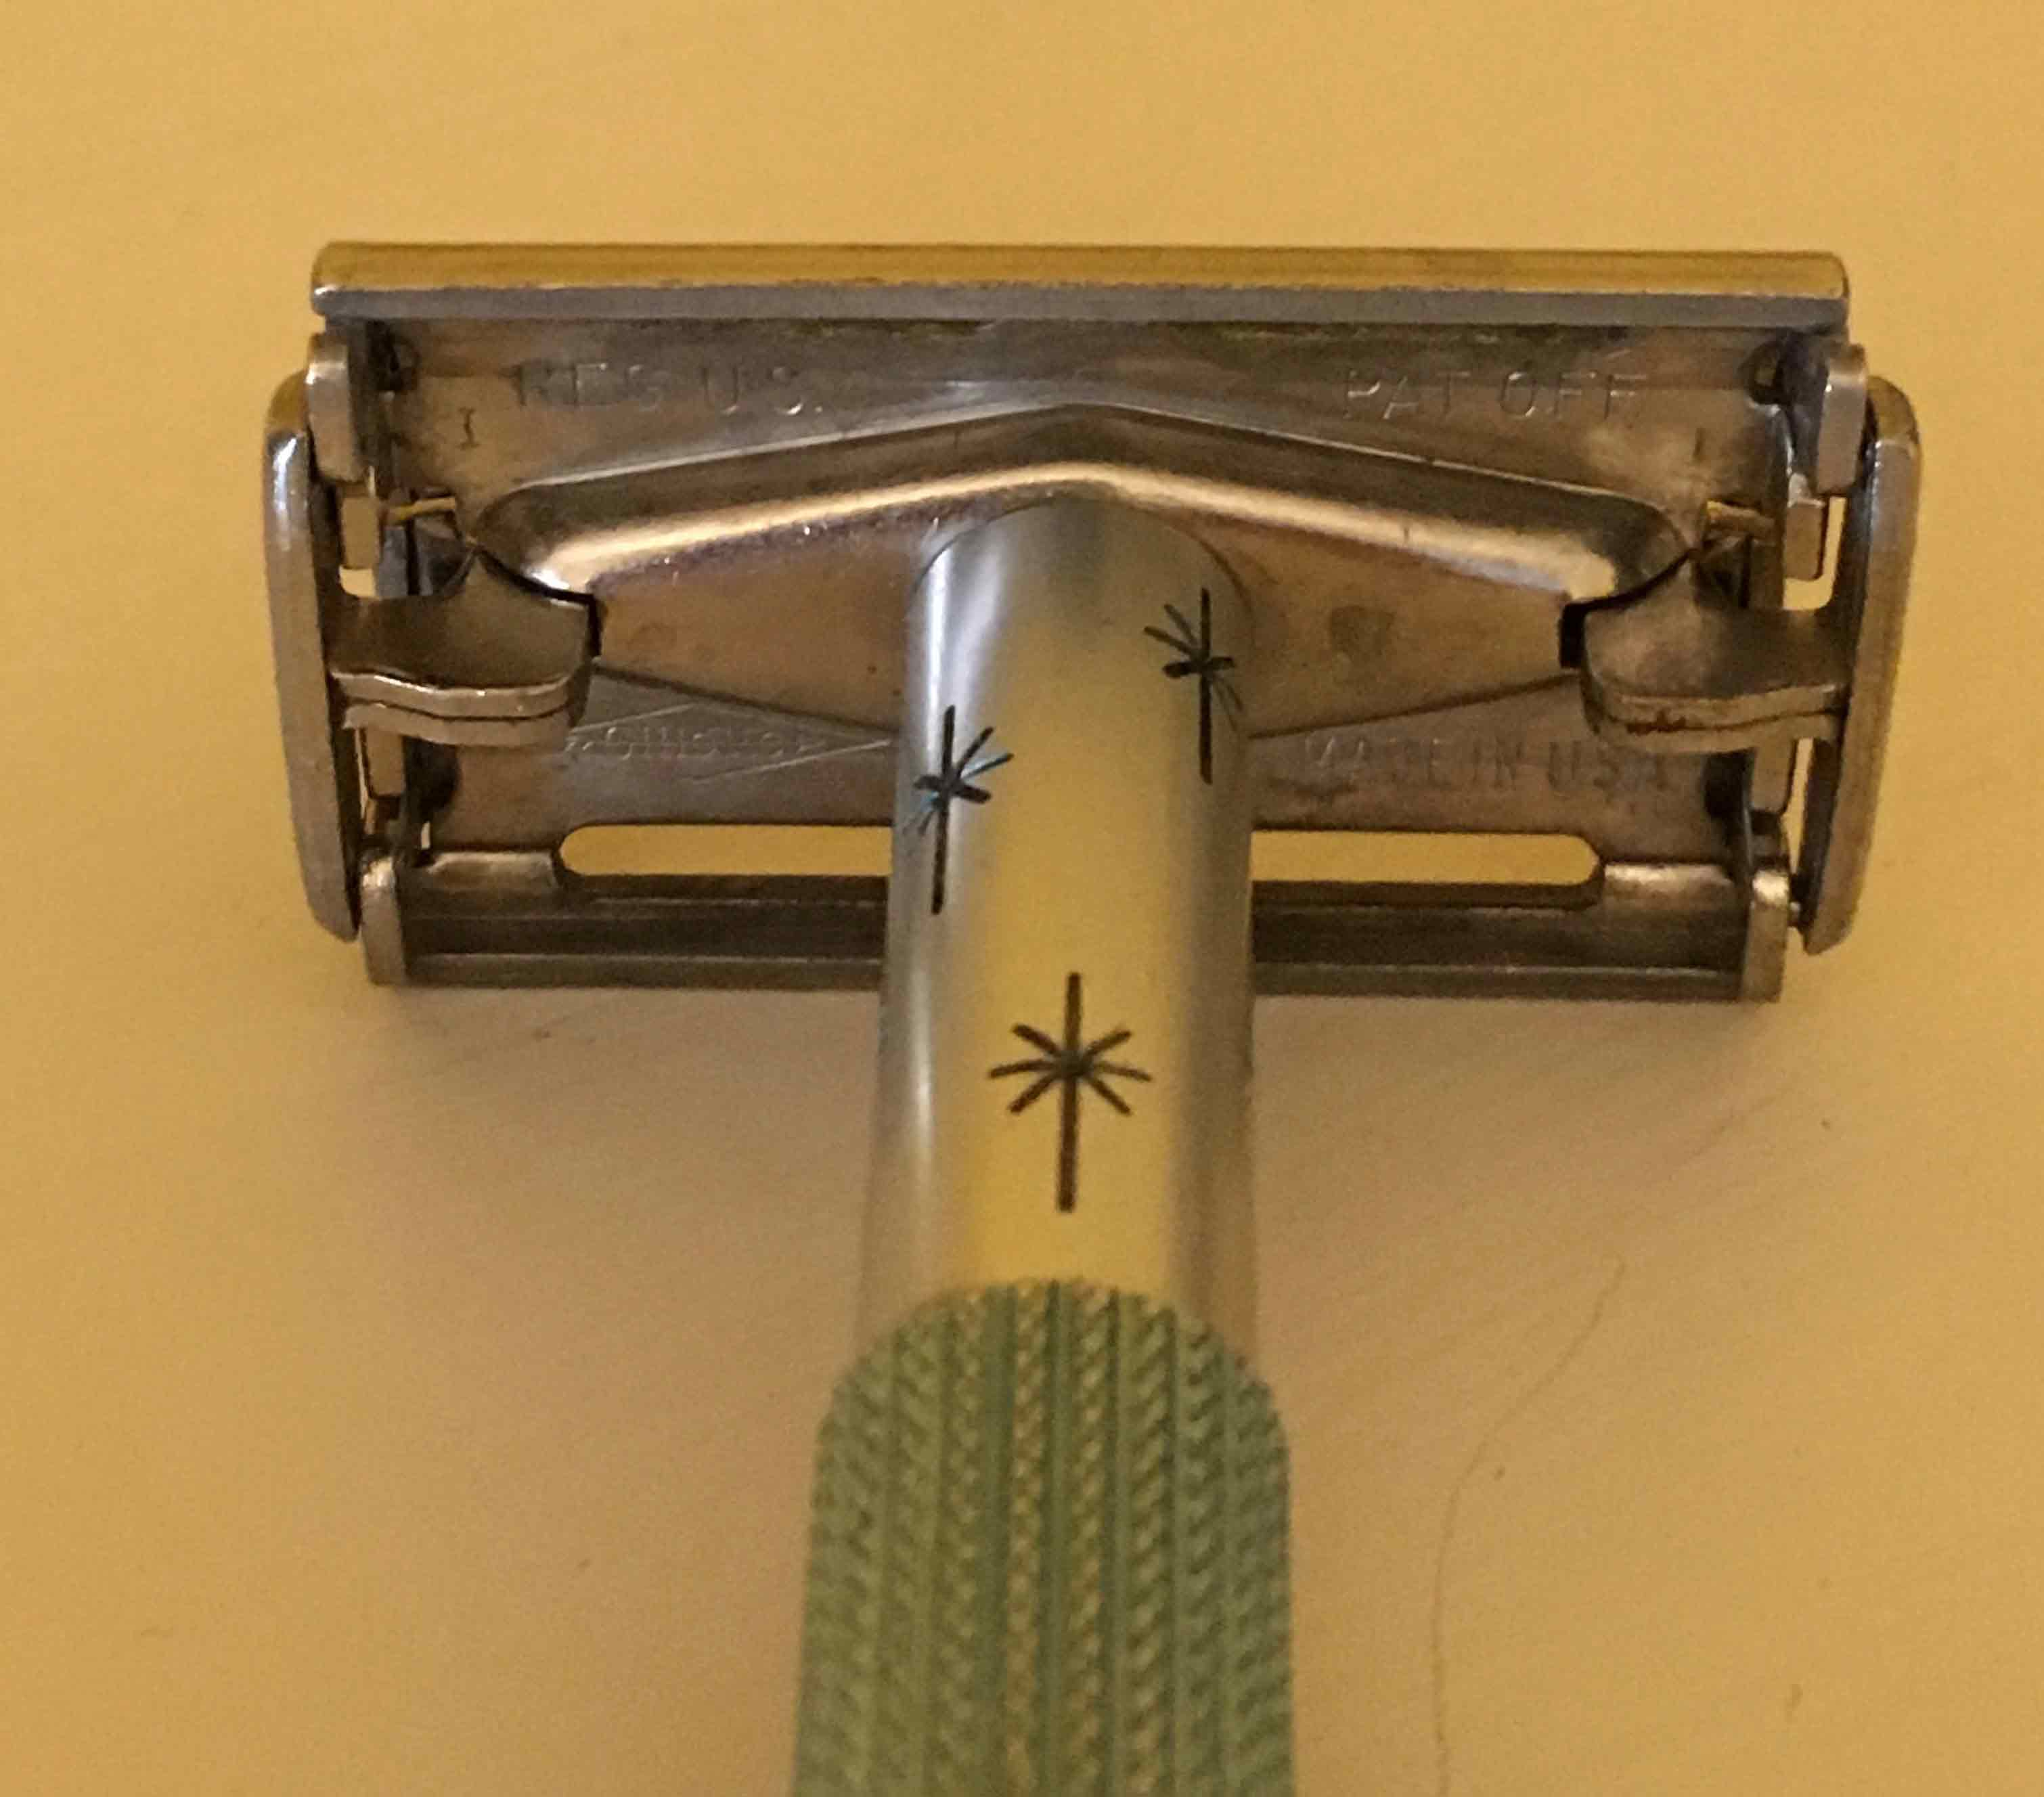 Lady-Gillette-1963-rear.jpg